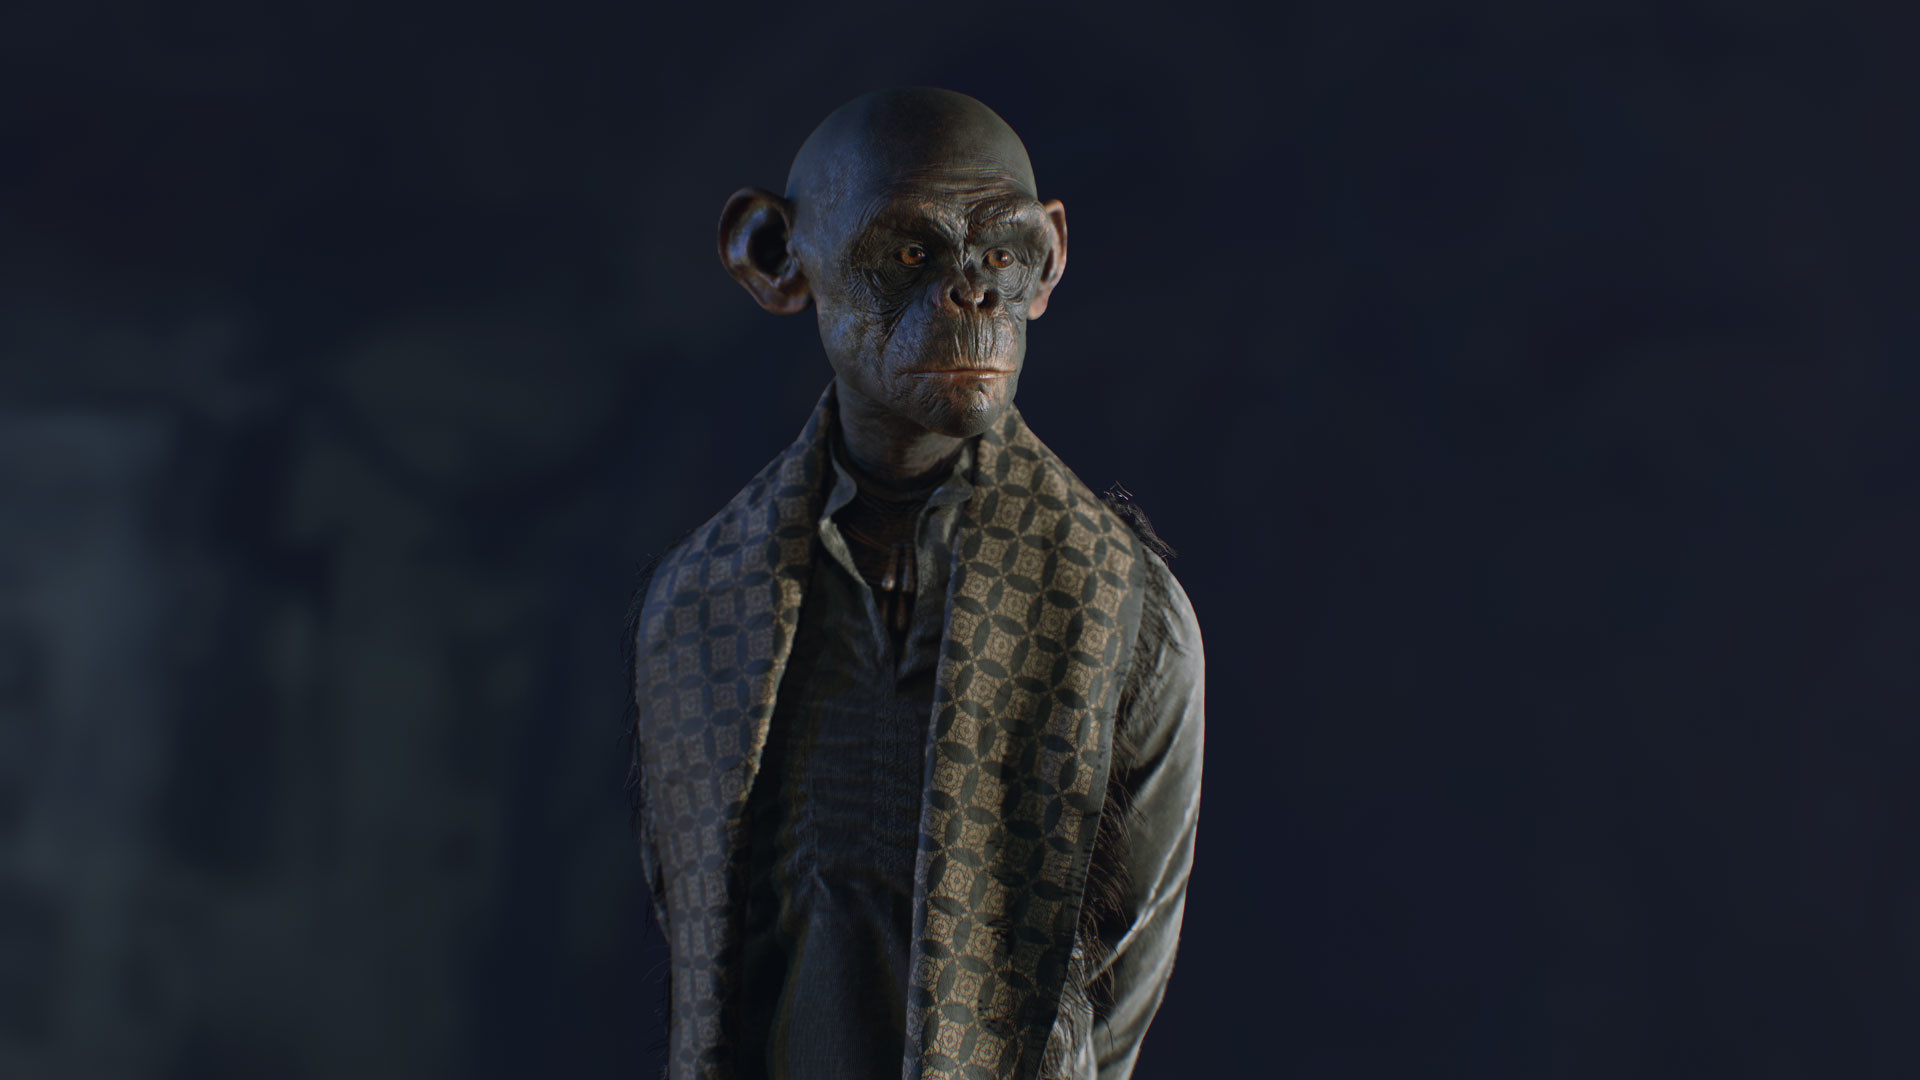 Pablo munoz gomez humanzee alternative render04